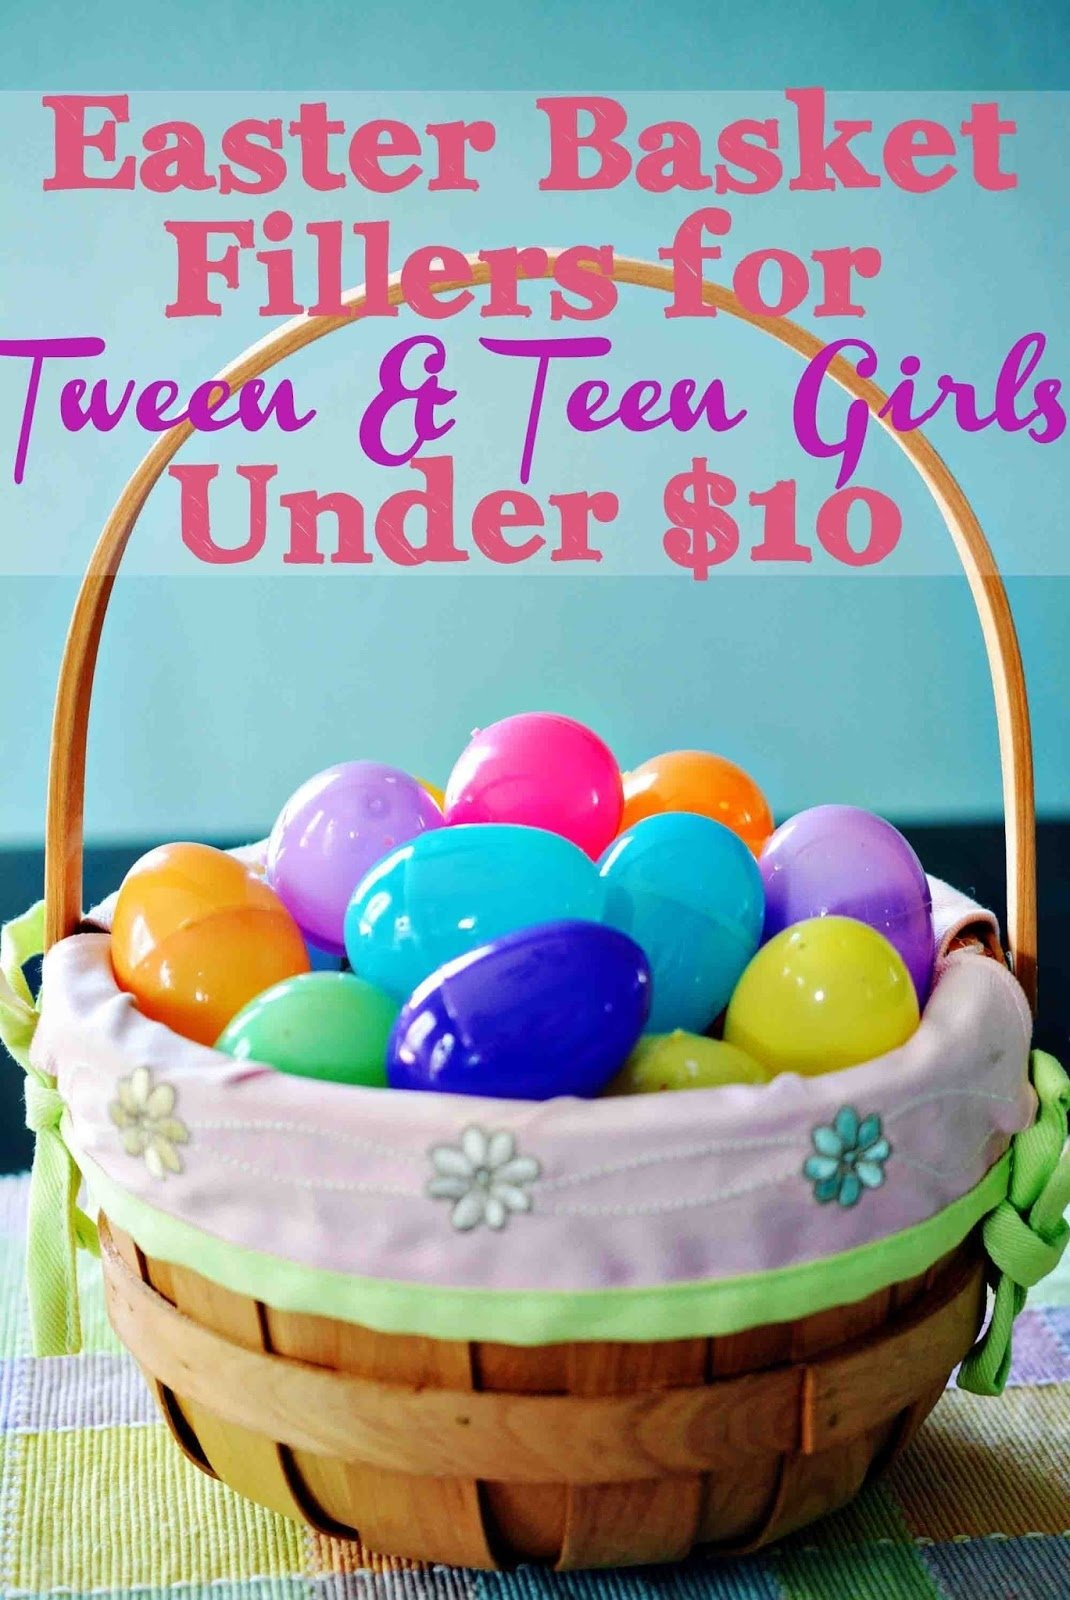 10 Most Recommended Easter Basket Ideas For Tweens theresas mixed nuts tween teen girl easter basket filler ideas 2020